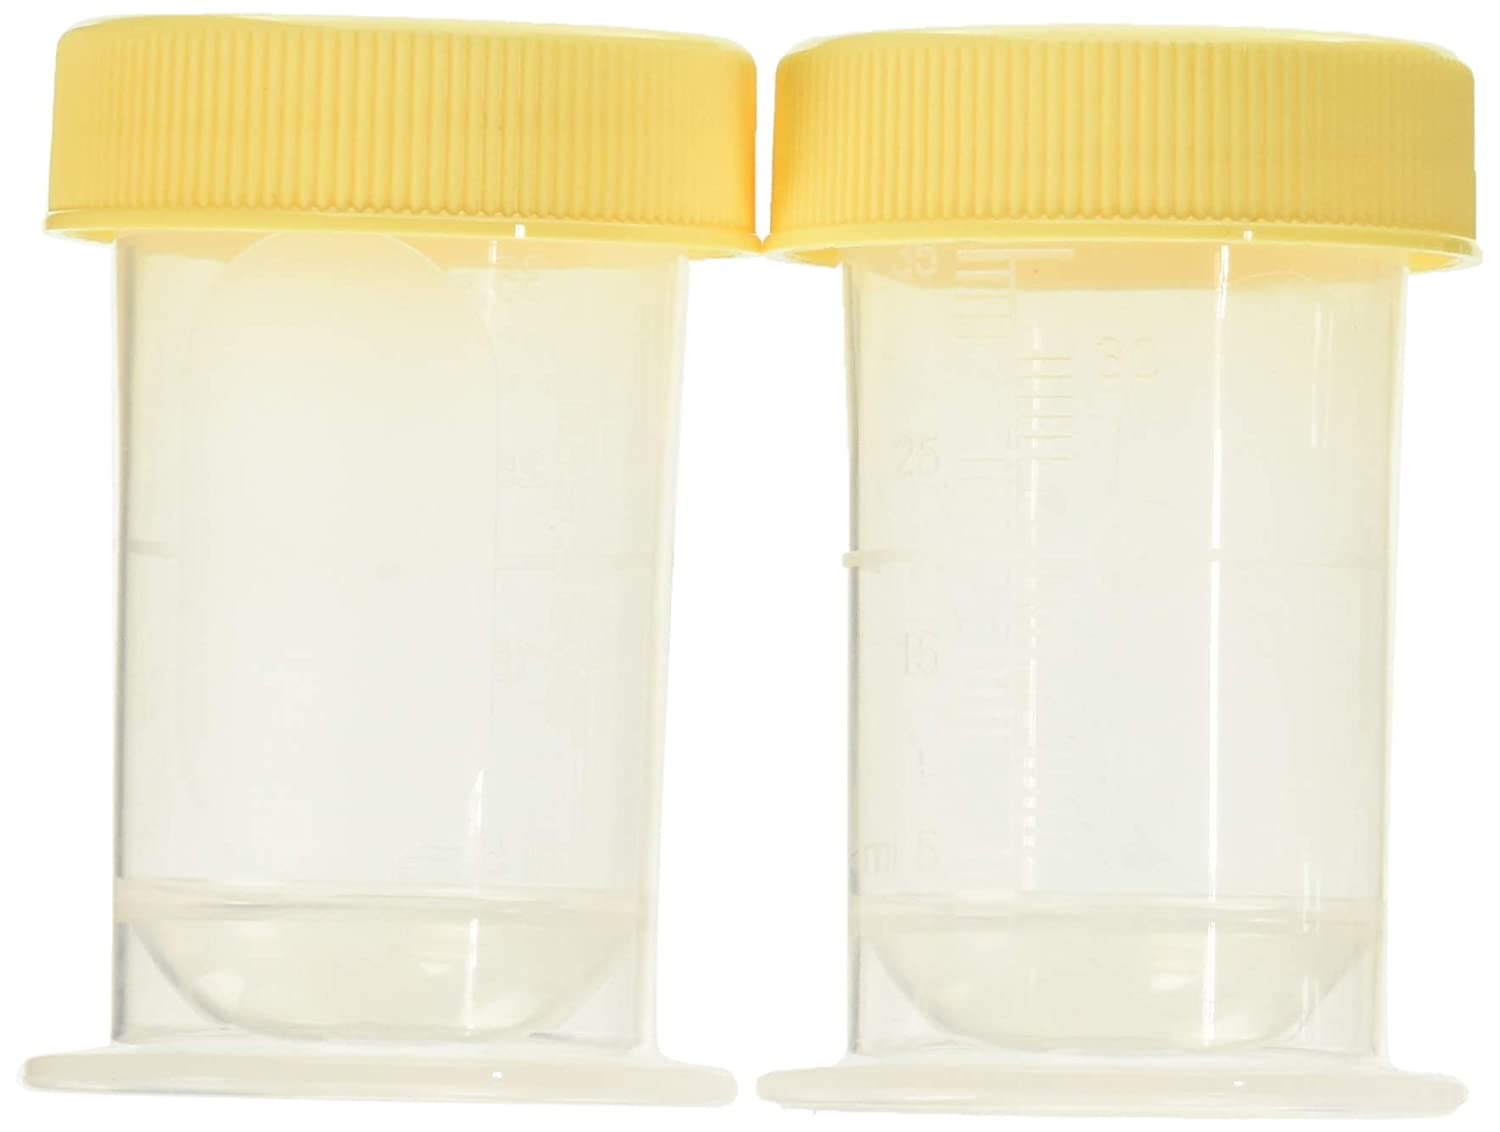 Medela Colostrum Collection Container Breastmilk Storage Bottle 35ml BPA Free with Solid Lids 2 Bottle 87110S